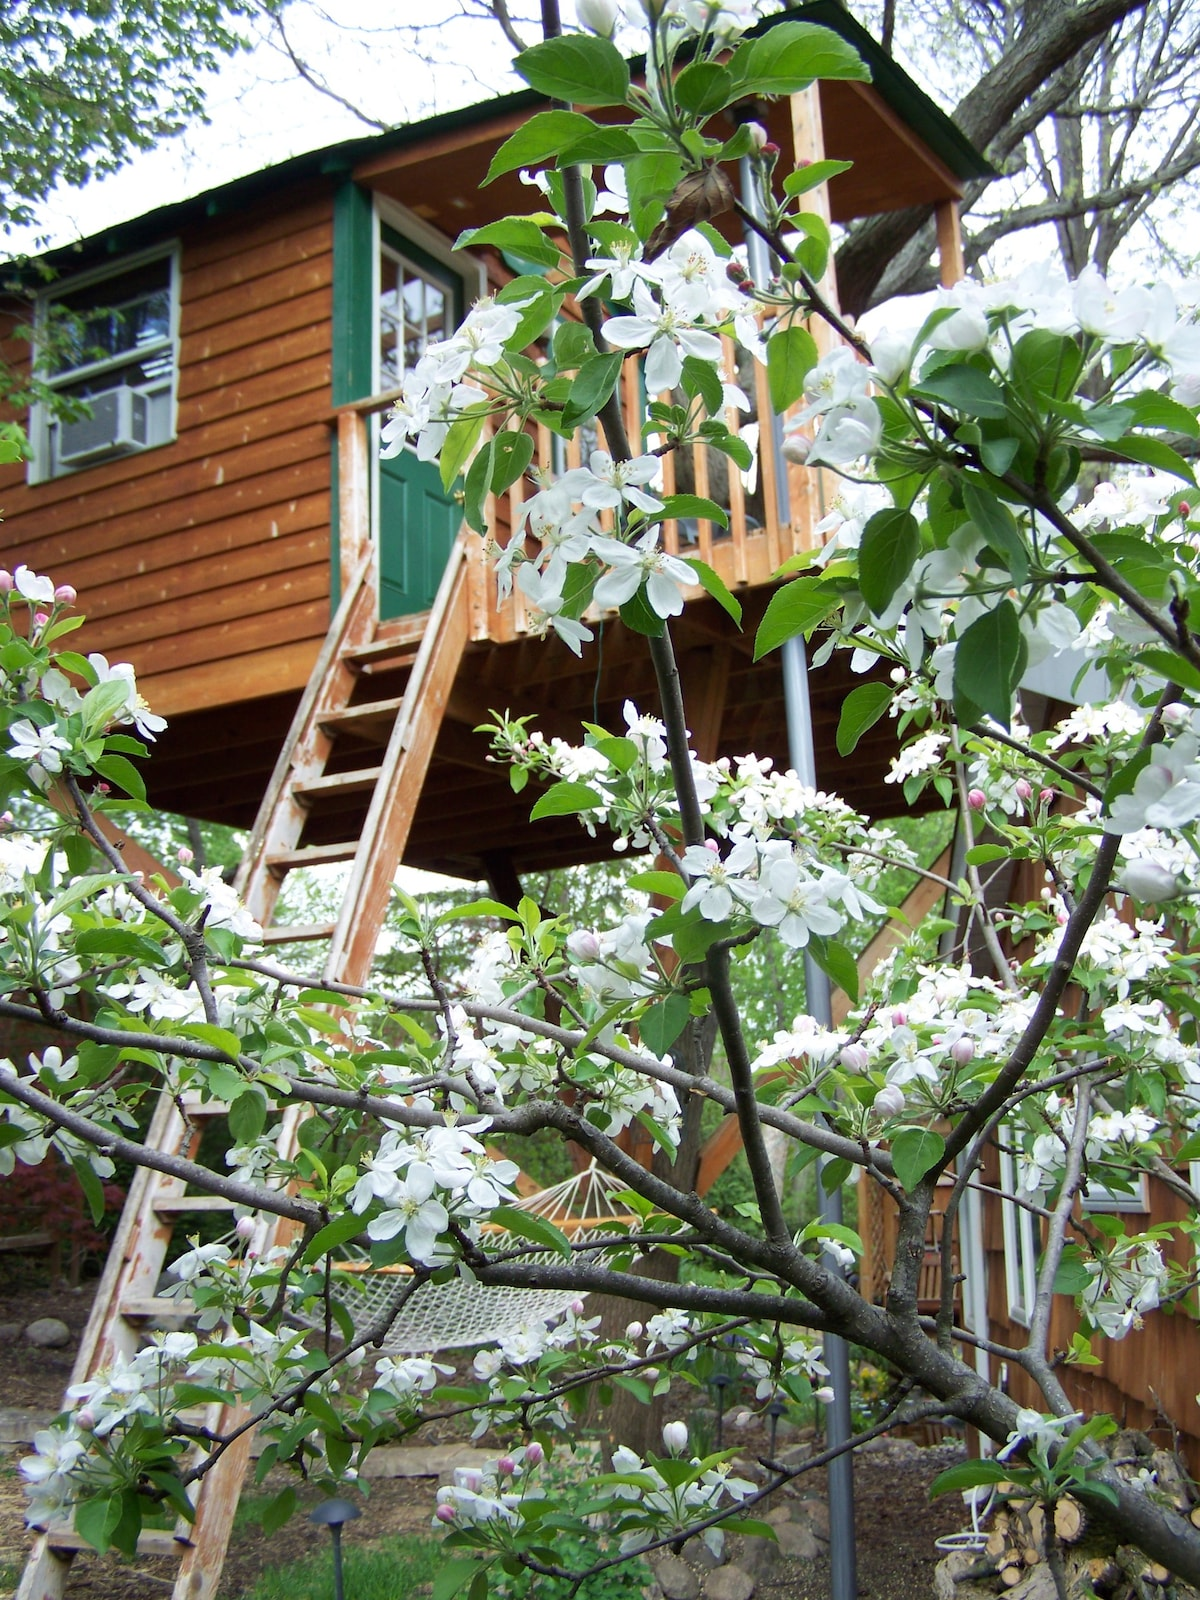 Magical Tree House, Airbnb Rent a Tree Hut for a Night Located in Chicago, Illinois